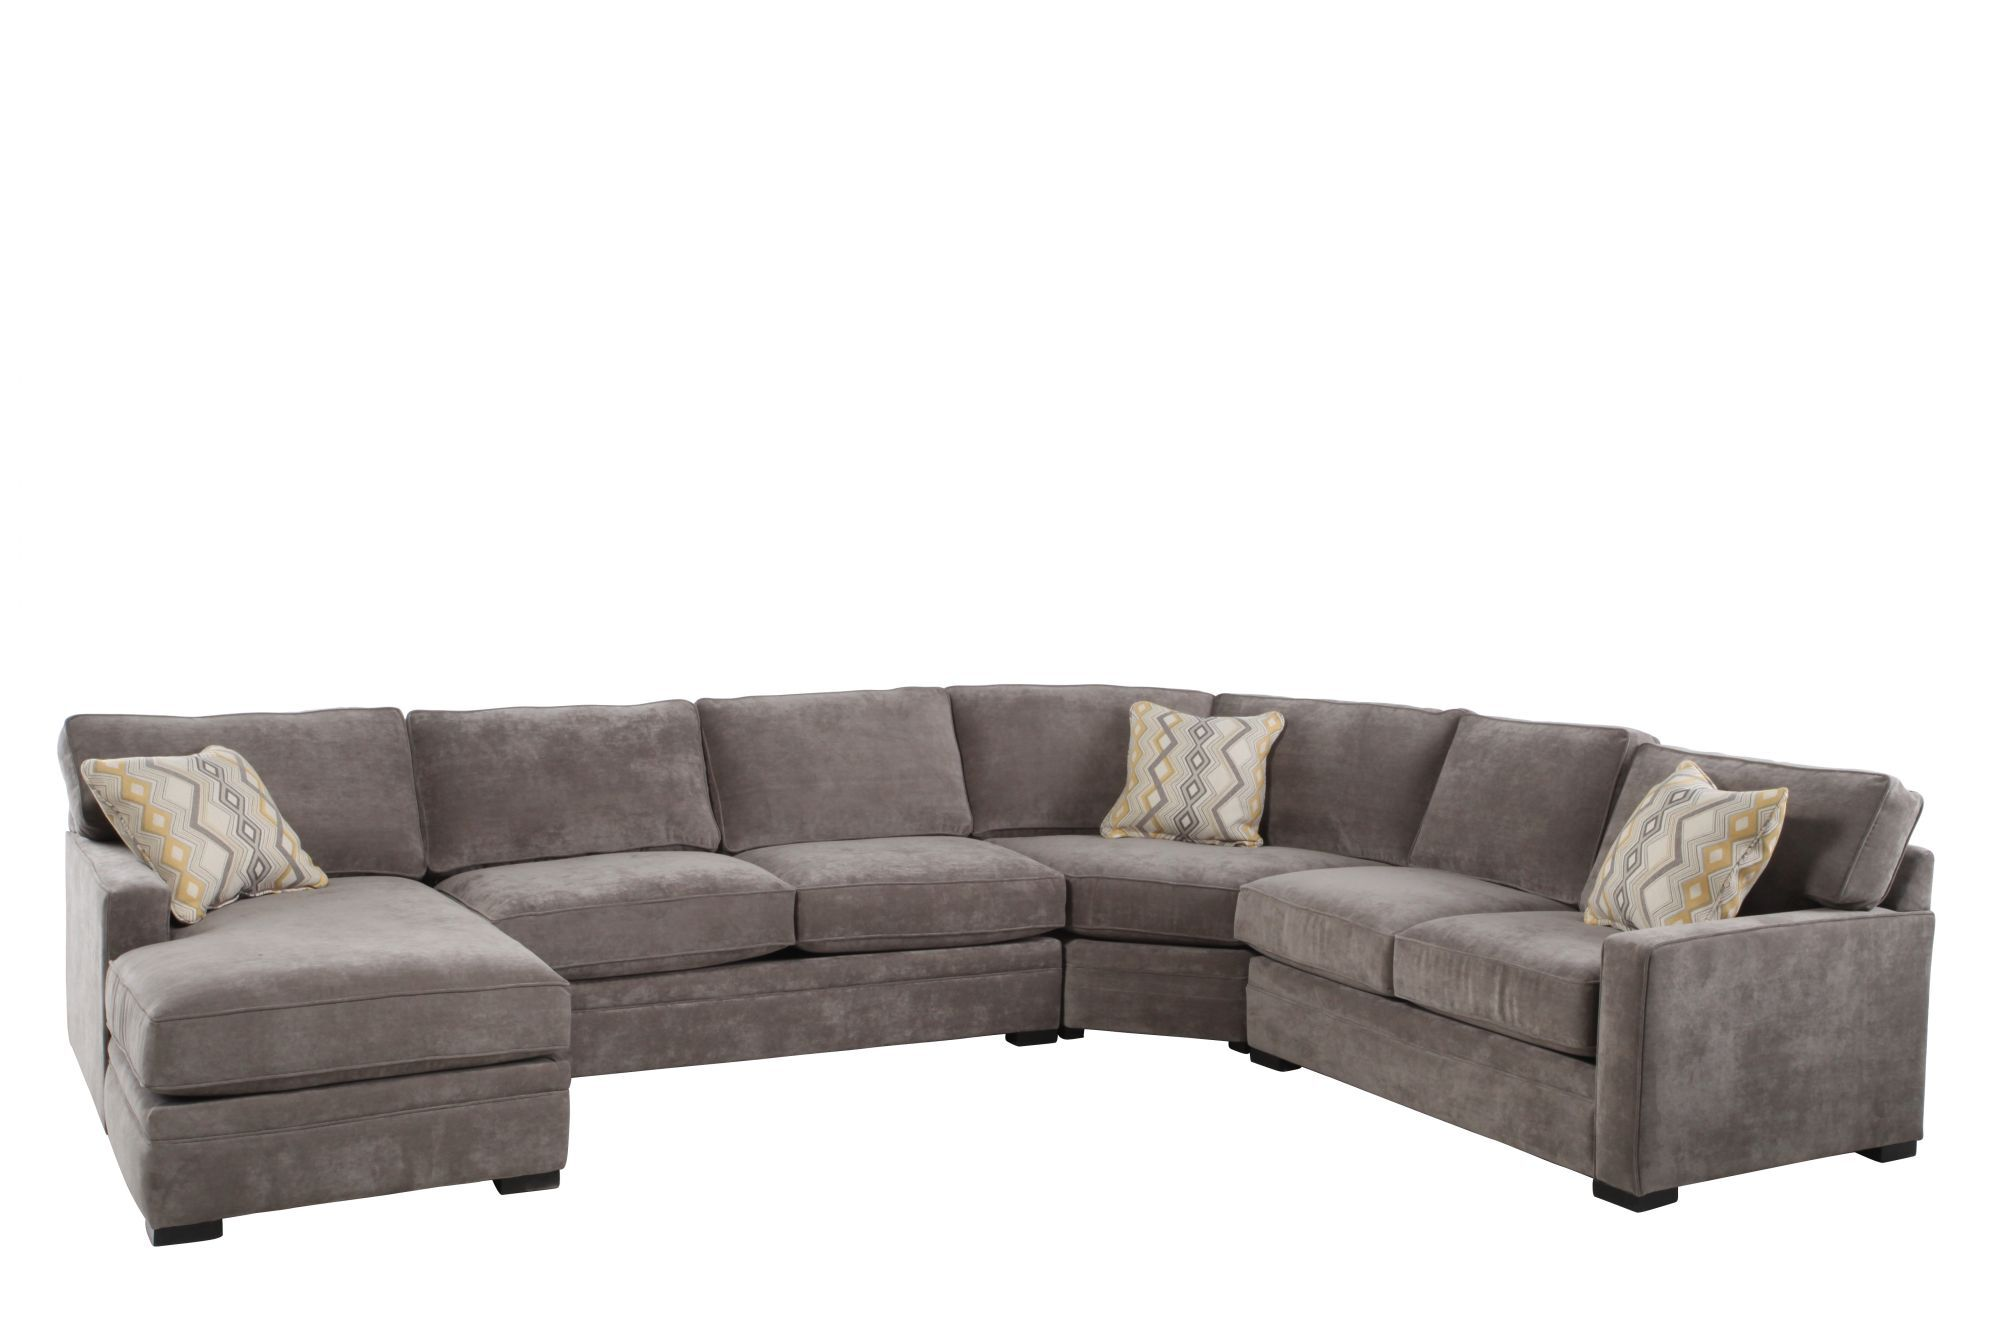 Jonathan Louis Choices Juno Four-Piece Sectional  sc 1 st  Mathis Brothers : jonathan louis artemis sectional - Sectionals, Sofas & Couches